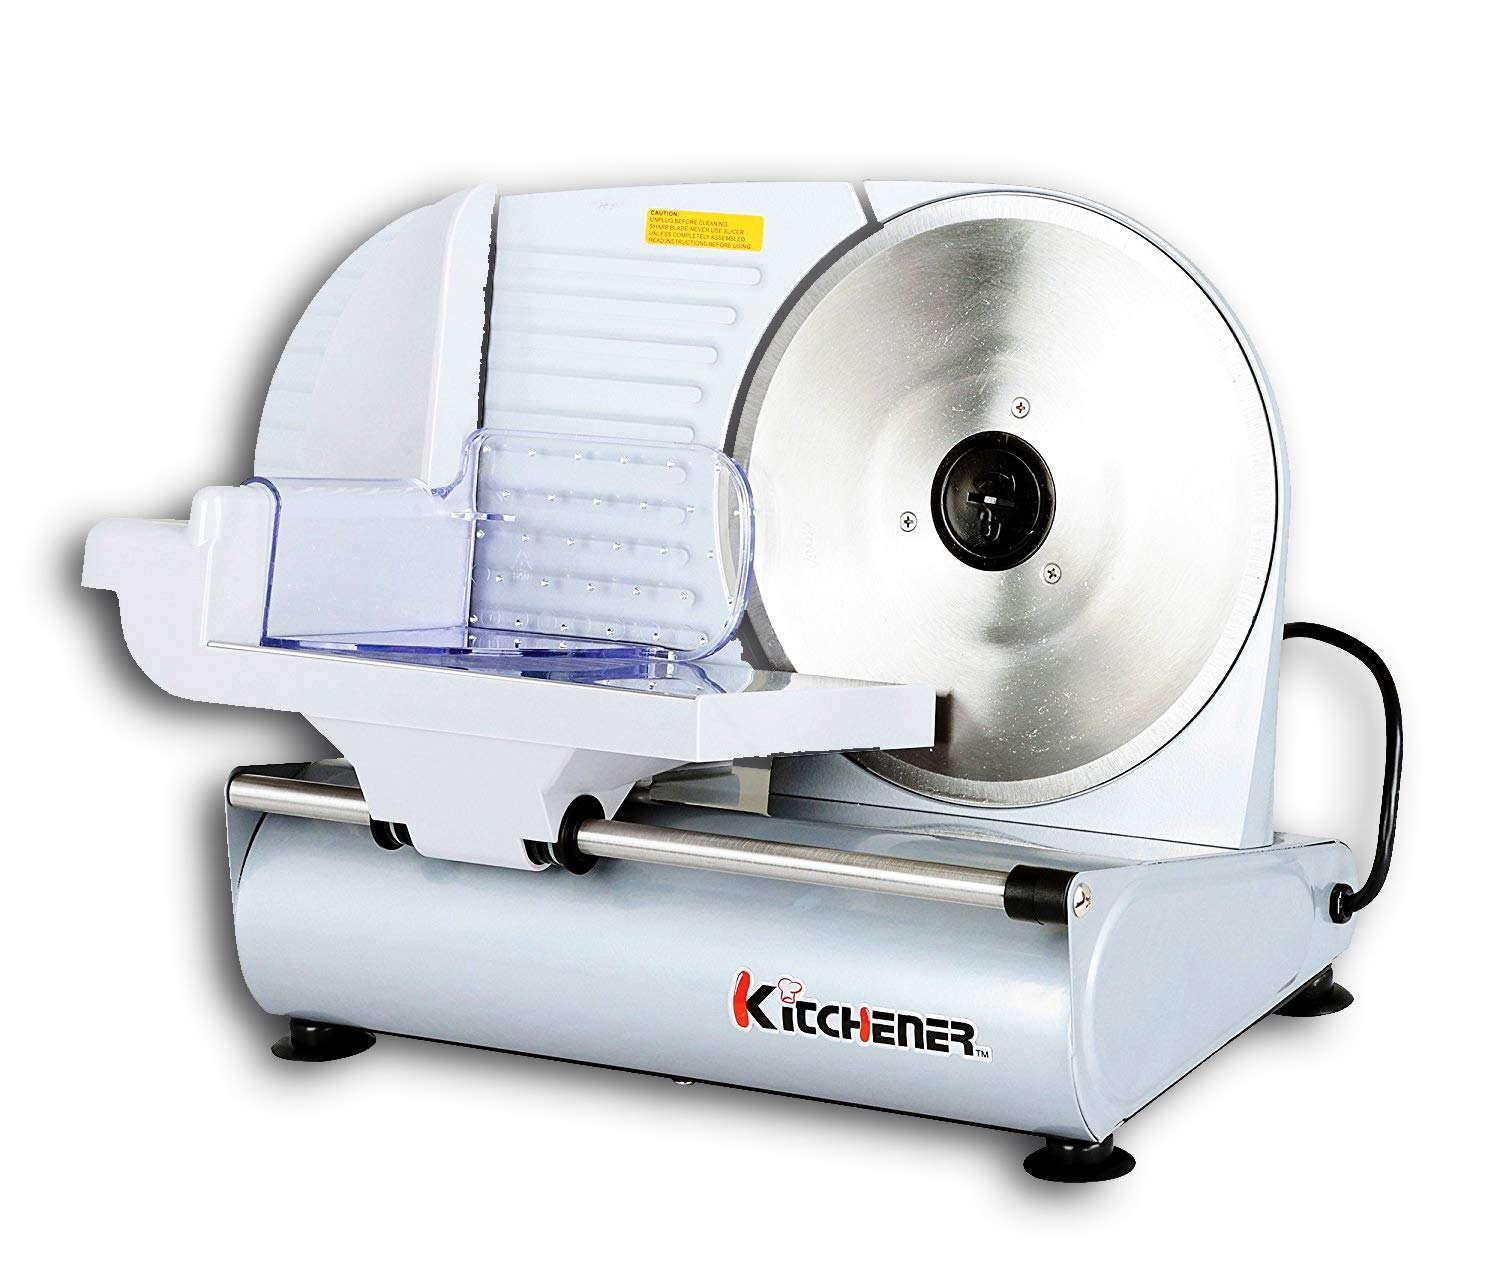 Kitchener 9 inch Professional Electric Stainless